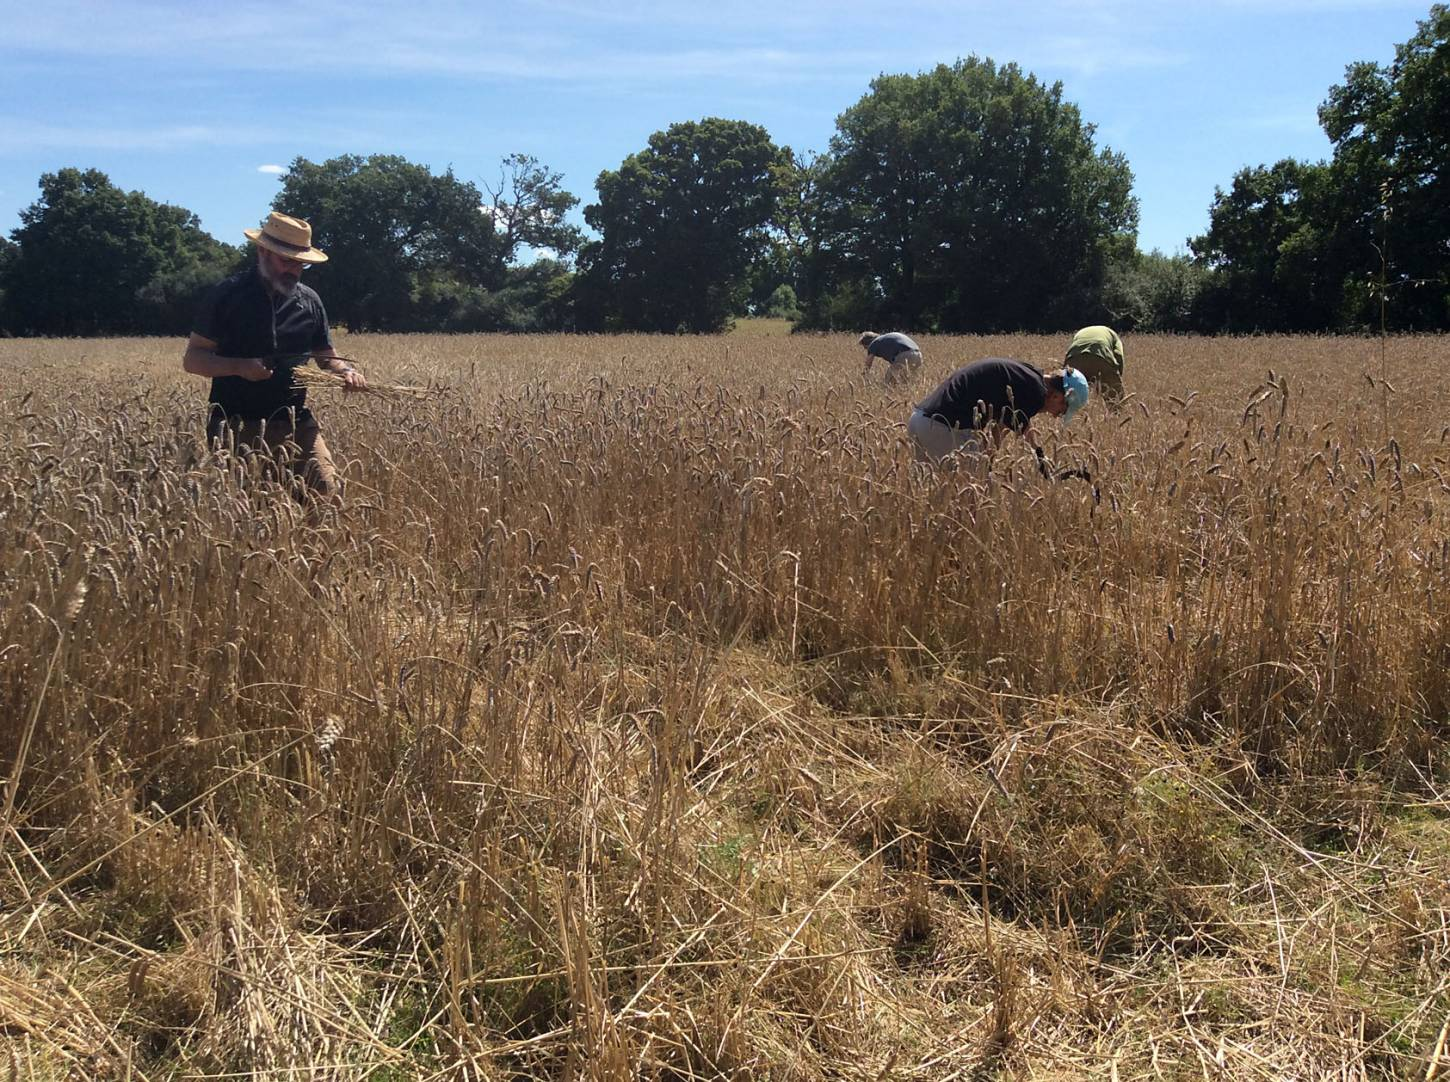 our manual harvest at Lodge Farm, pics = <a href='http://www.annbodkin.co.uk/' target='_blank'>Ann Bodkin</a> - 12:28pm&nbsp;13<sup>th</sup>&nbsp;Aug.&nbsp;'17